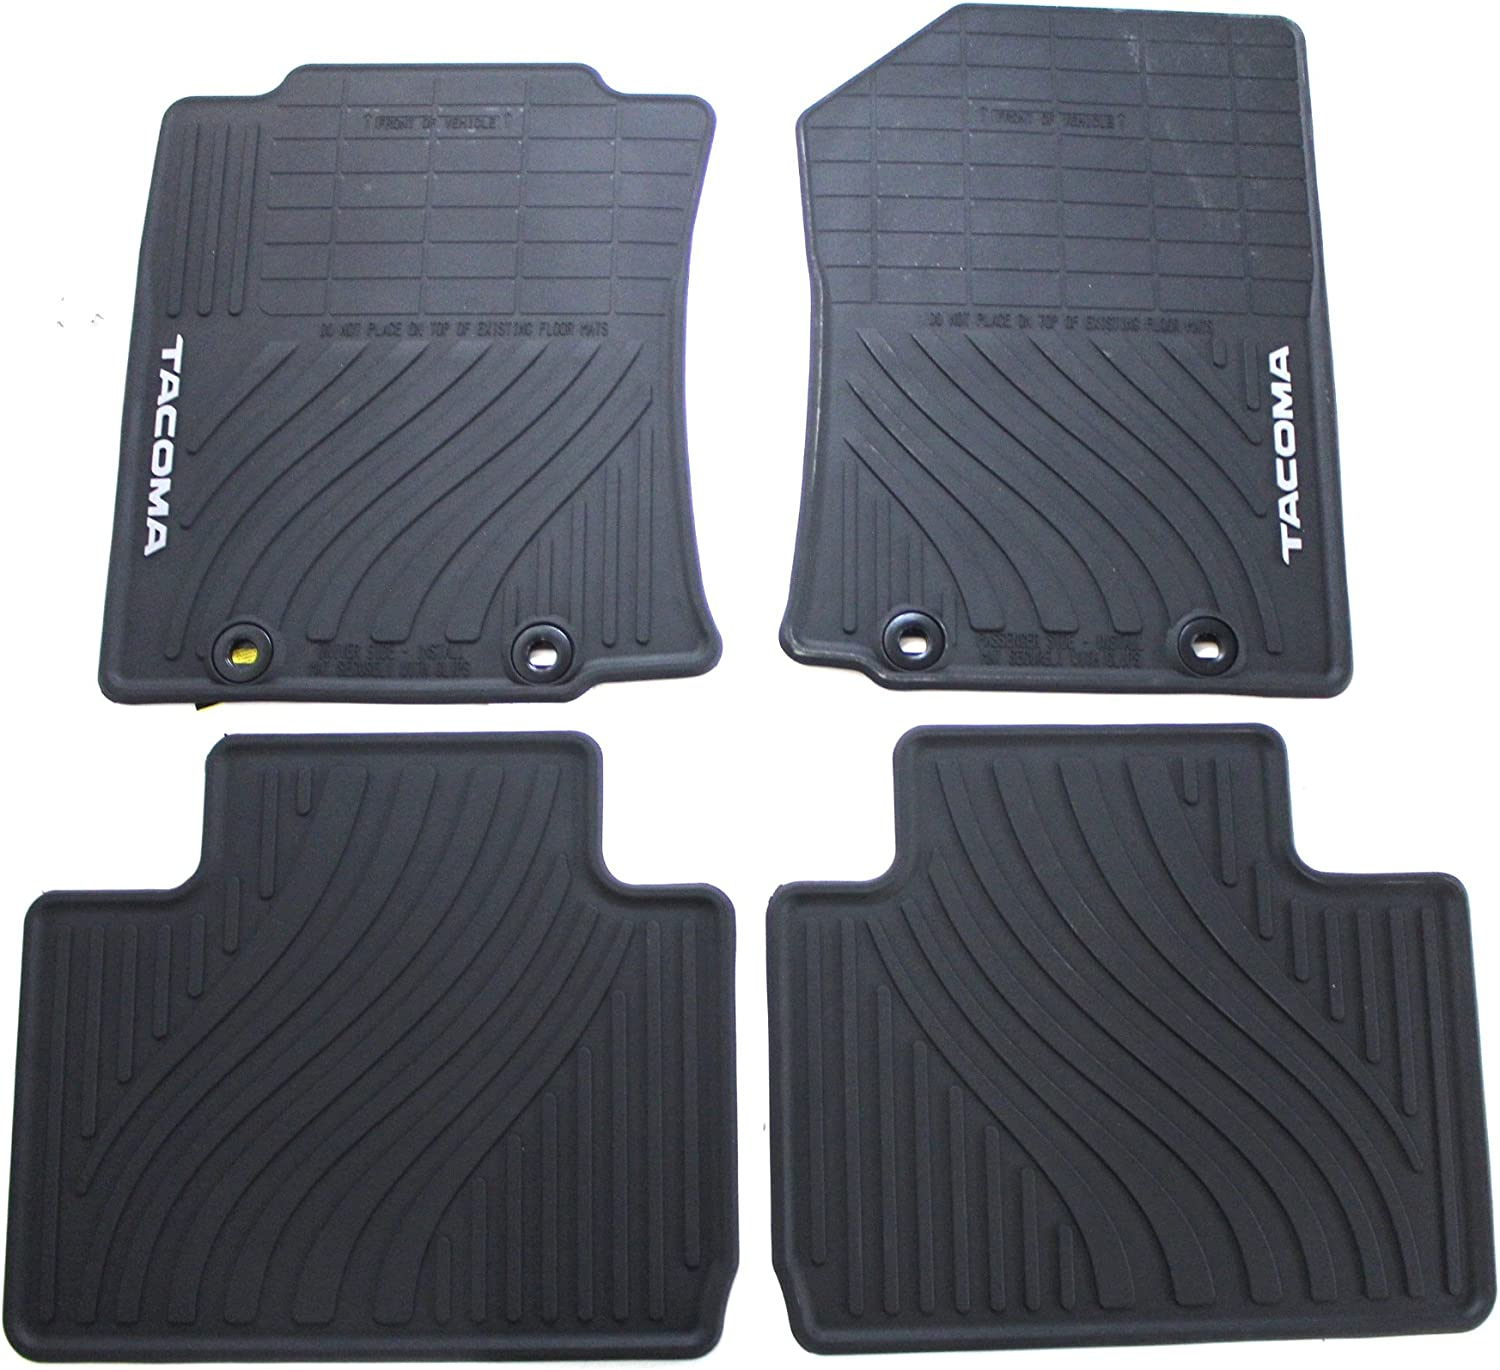 Set of 2 Genuine Toyota Accessories PT908-35120-20 Front and Rear All-Weather Floor Mat Black